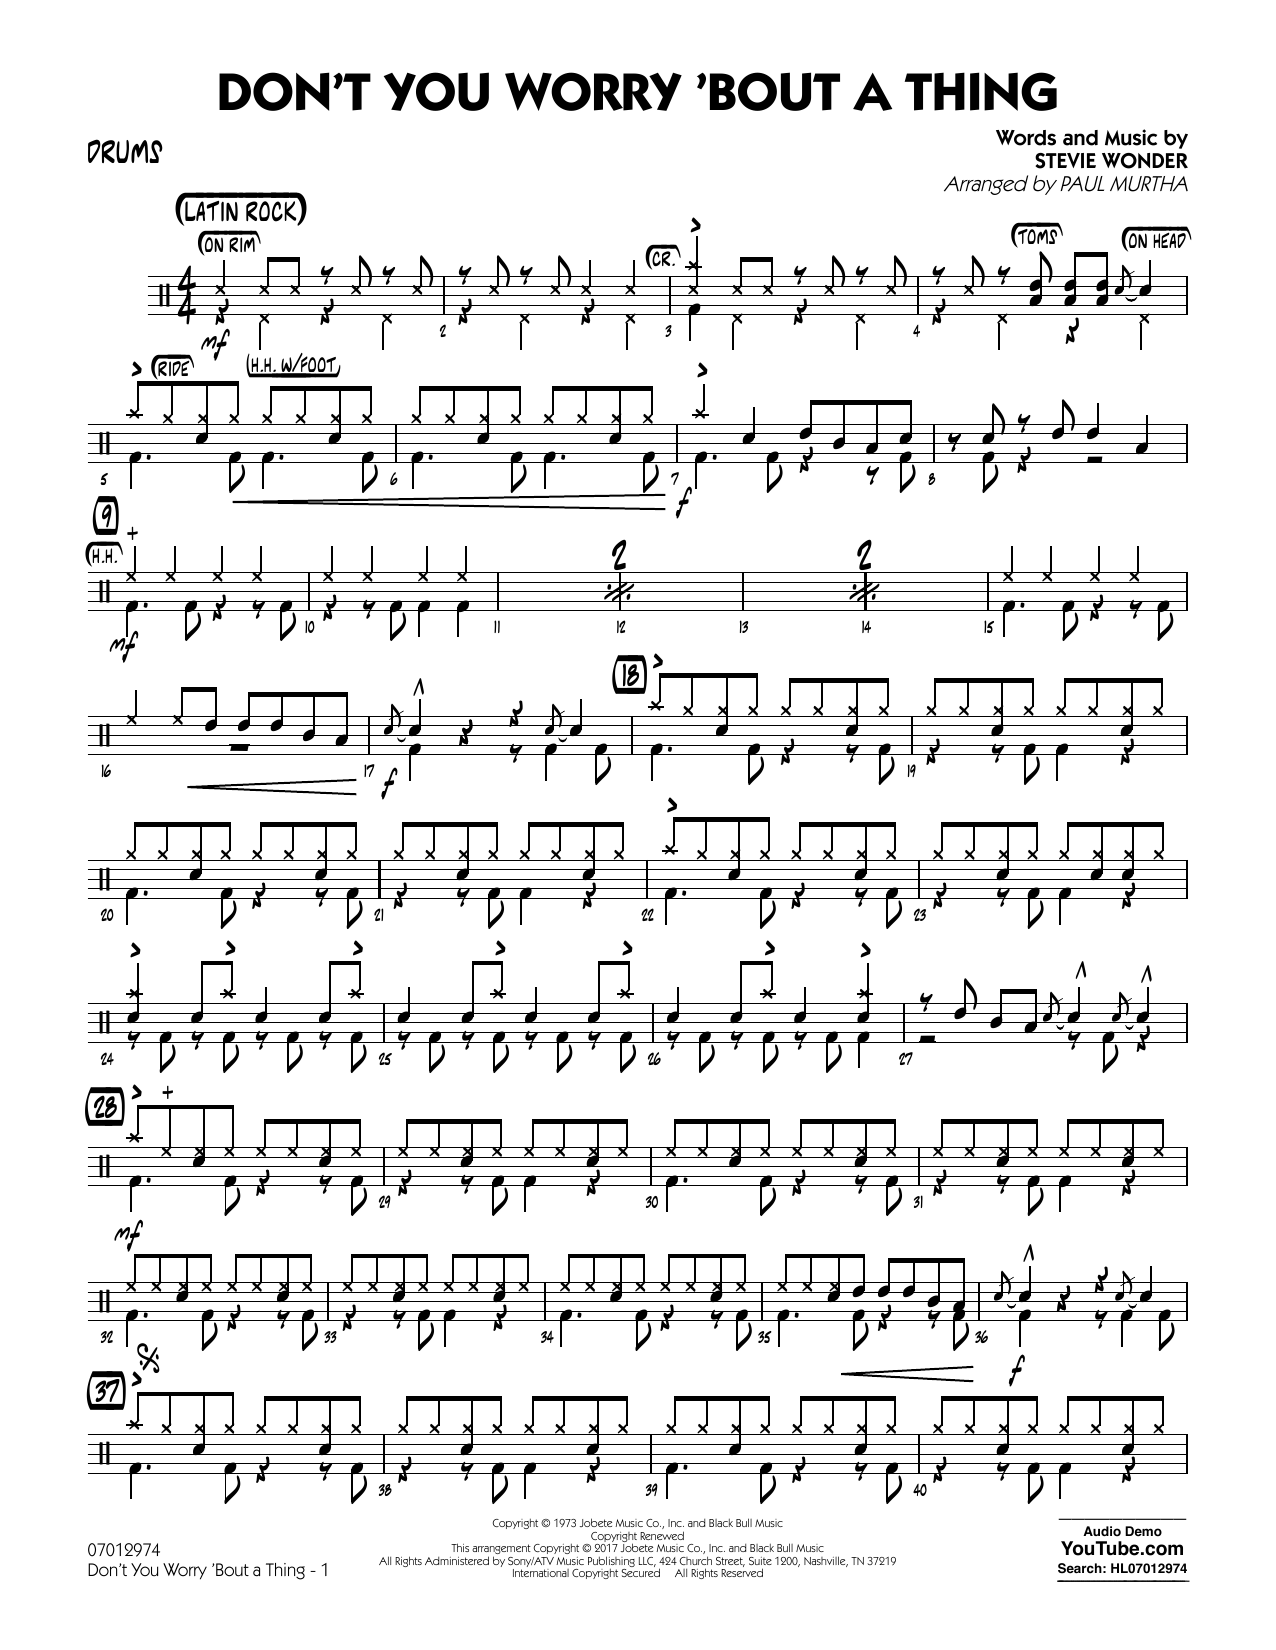 Don't You Worry 'Bout a Thing - Drums Sheet Music